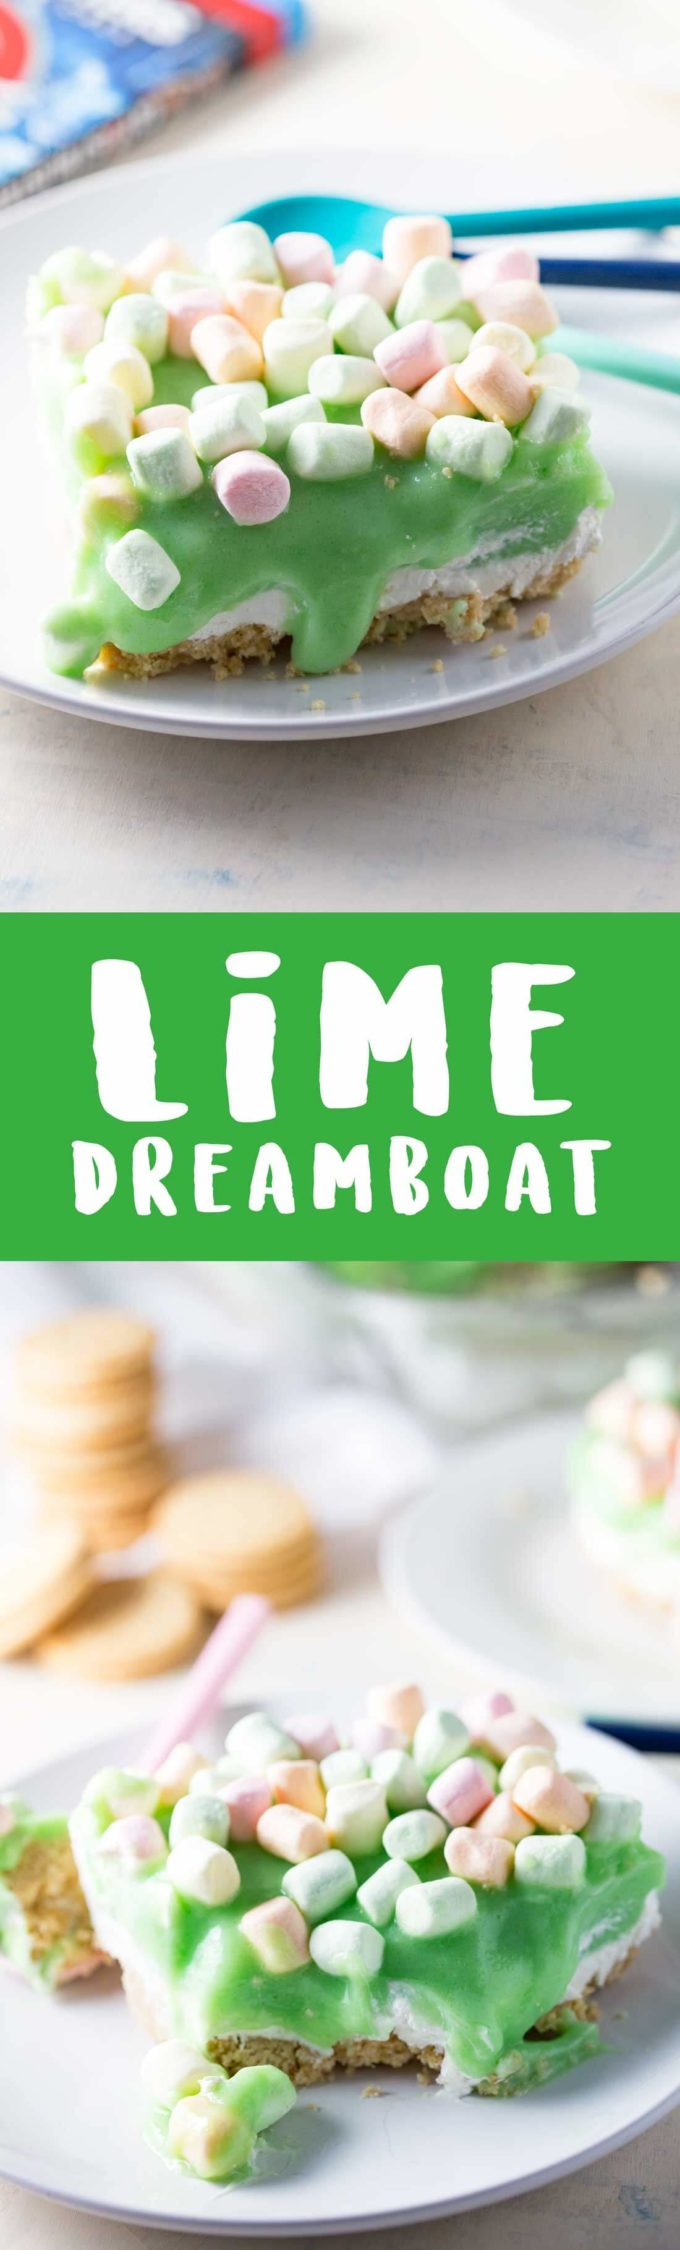 This creamy luscious dessert is a lime dreamboat, layers of yummy.